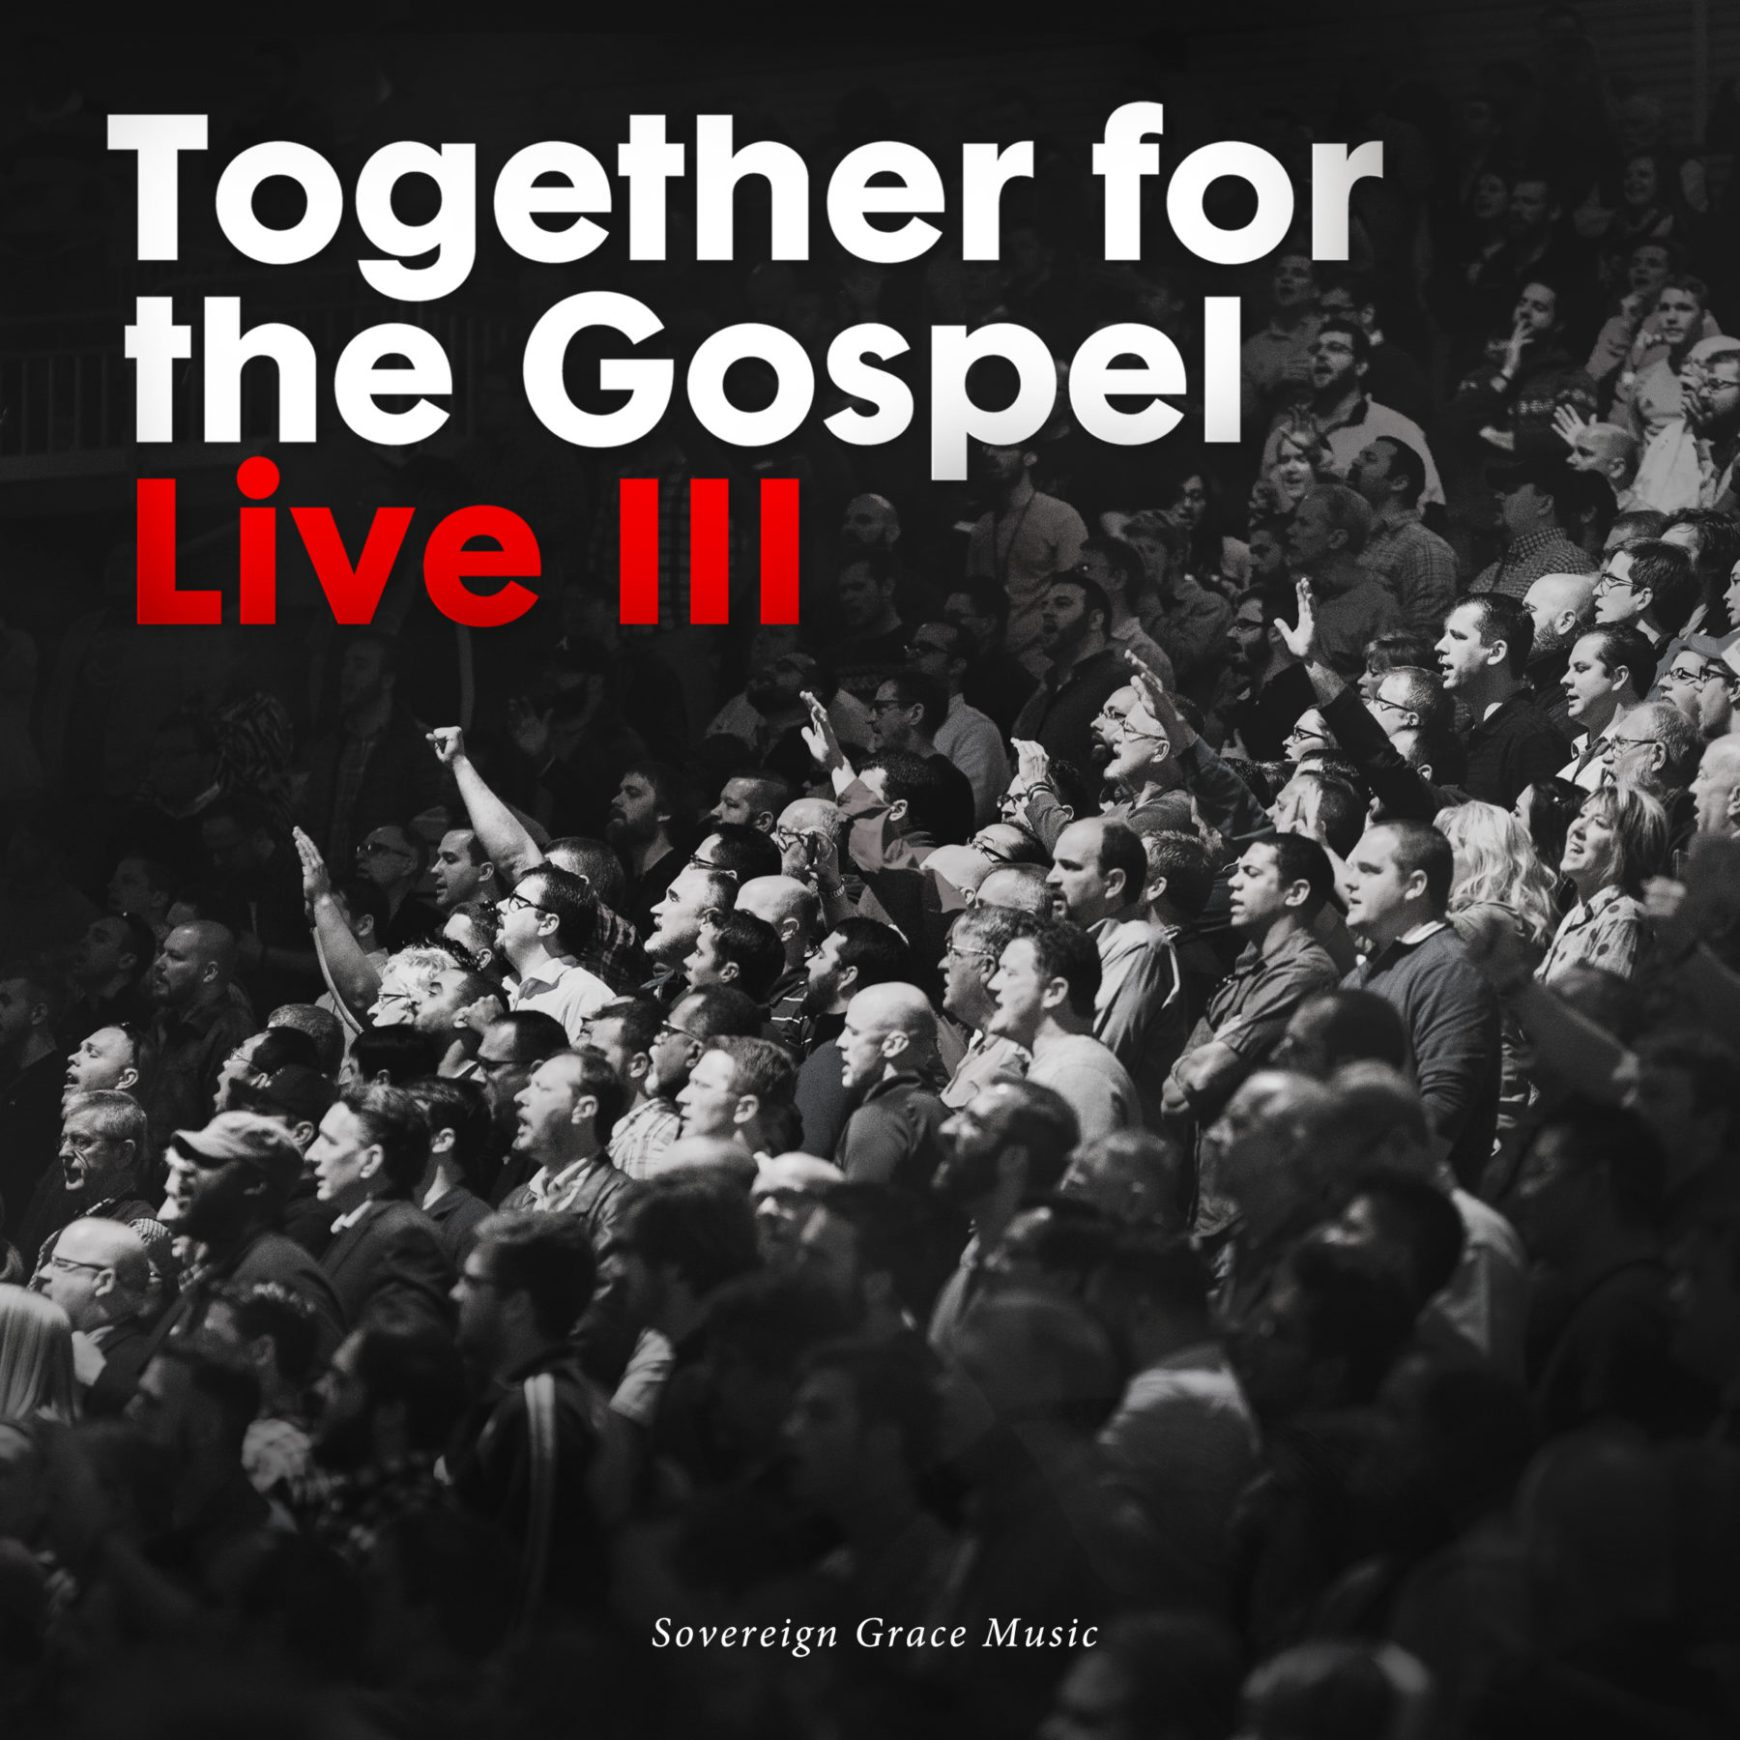 Together for the Gospel-Live III